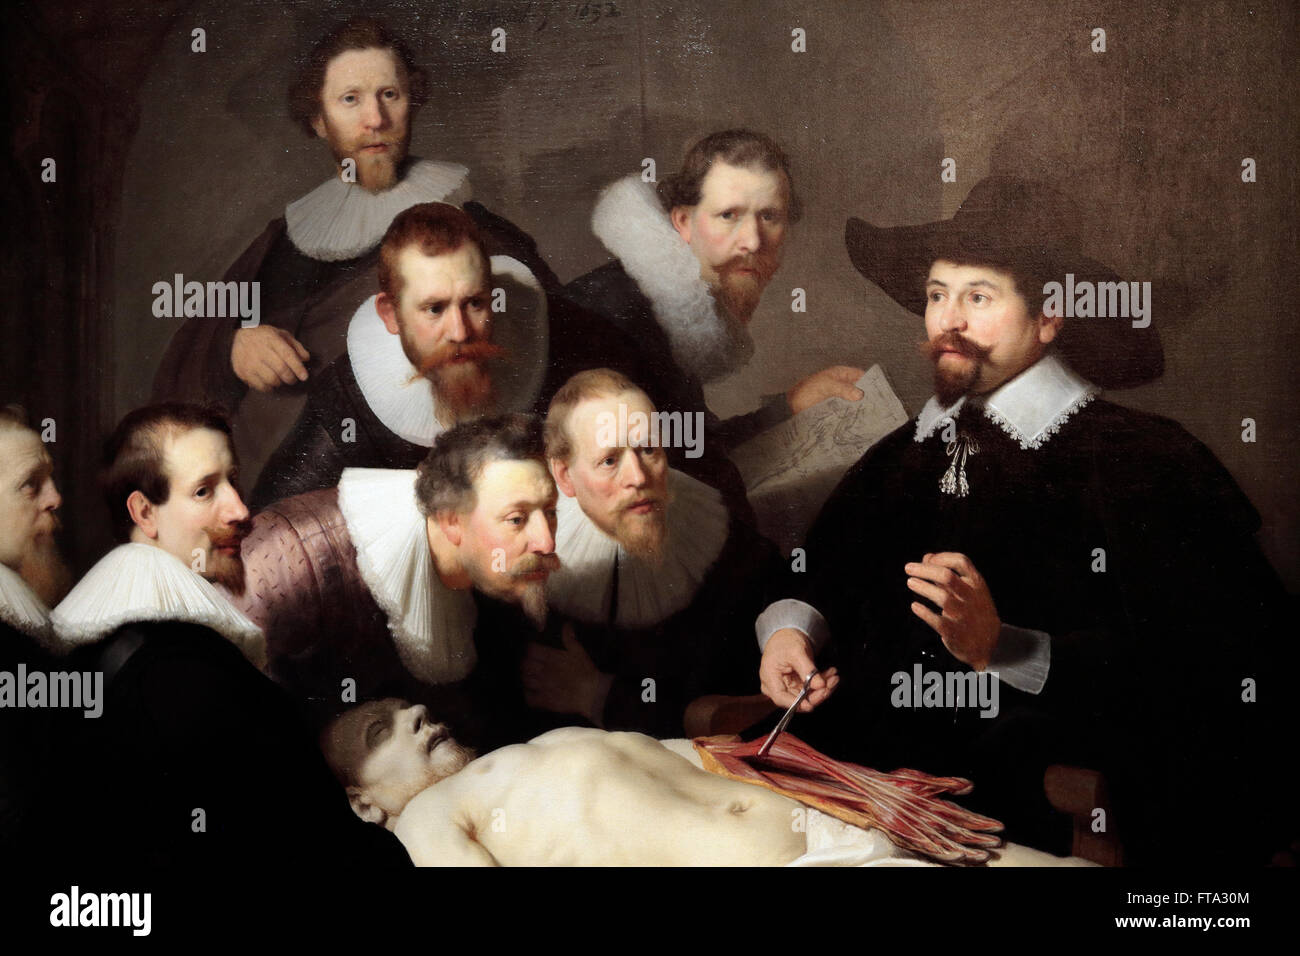 Detail Of The Anatomy Lesson Of Dr Nicolaes Tulp By Rembrandt On